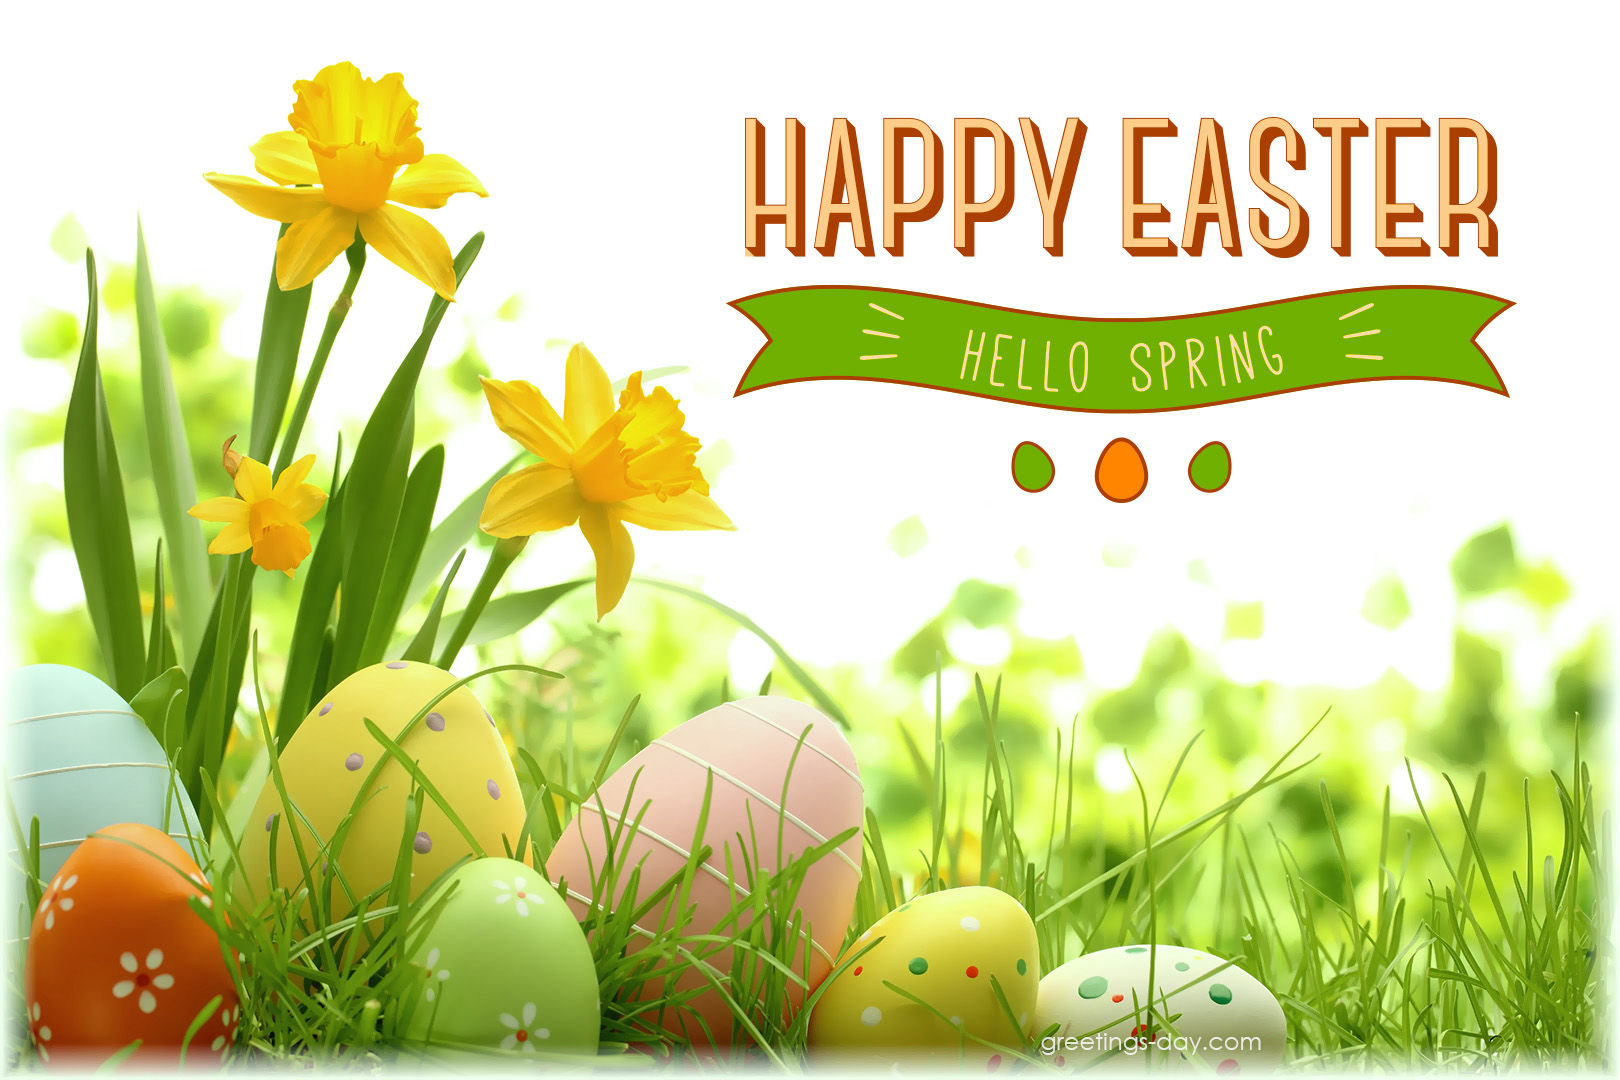 Happy Easter, Hello Spring Pictures, Photos, and Images ...